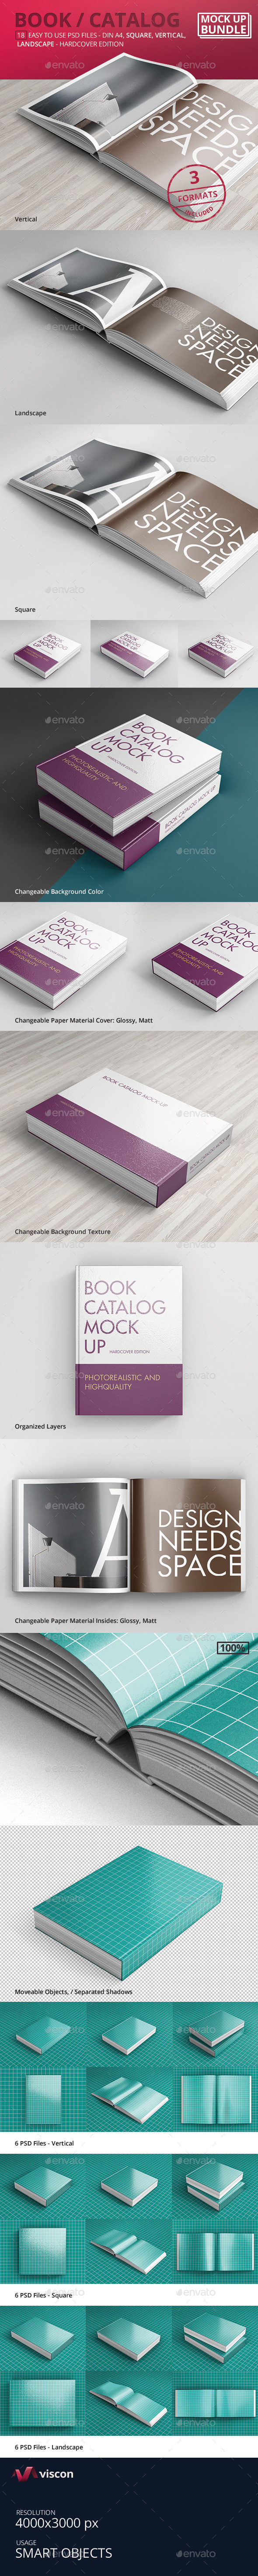 Book / Catalog Mock-Ups Bundle Hardcover Edition - Books Print